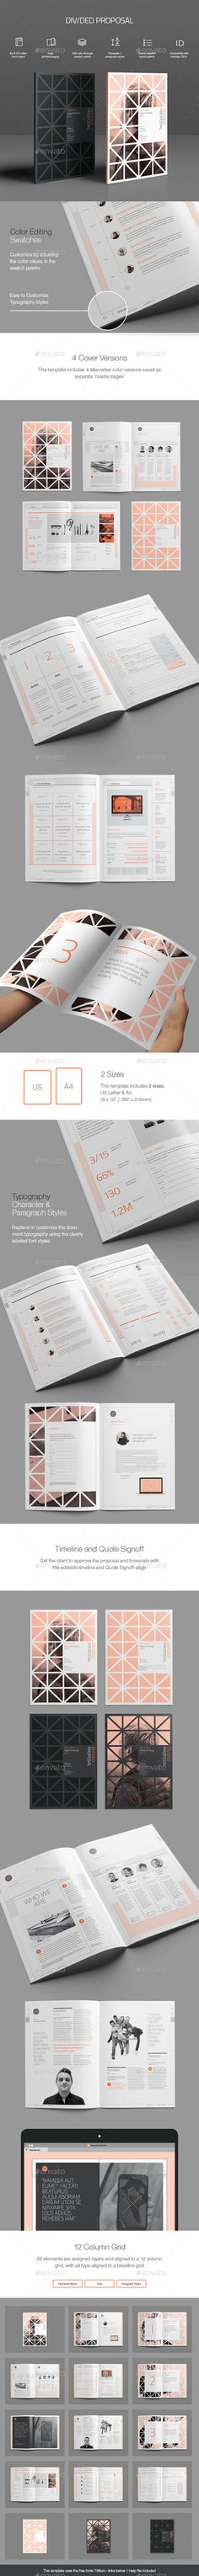 Divided Proposal Template InDesign INDD #design Download: http://graphicriver.net/item/divided-proposal-template/13185069?ref=ksioks